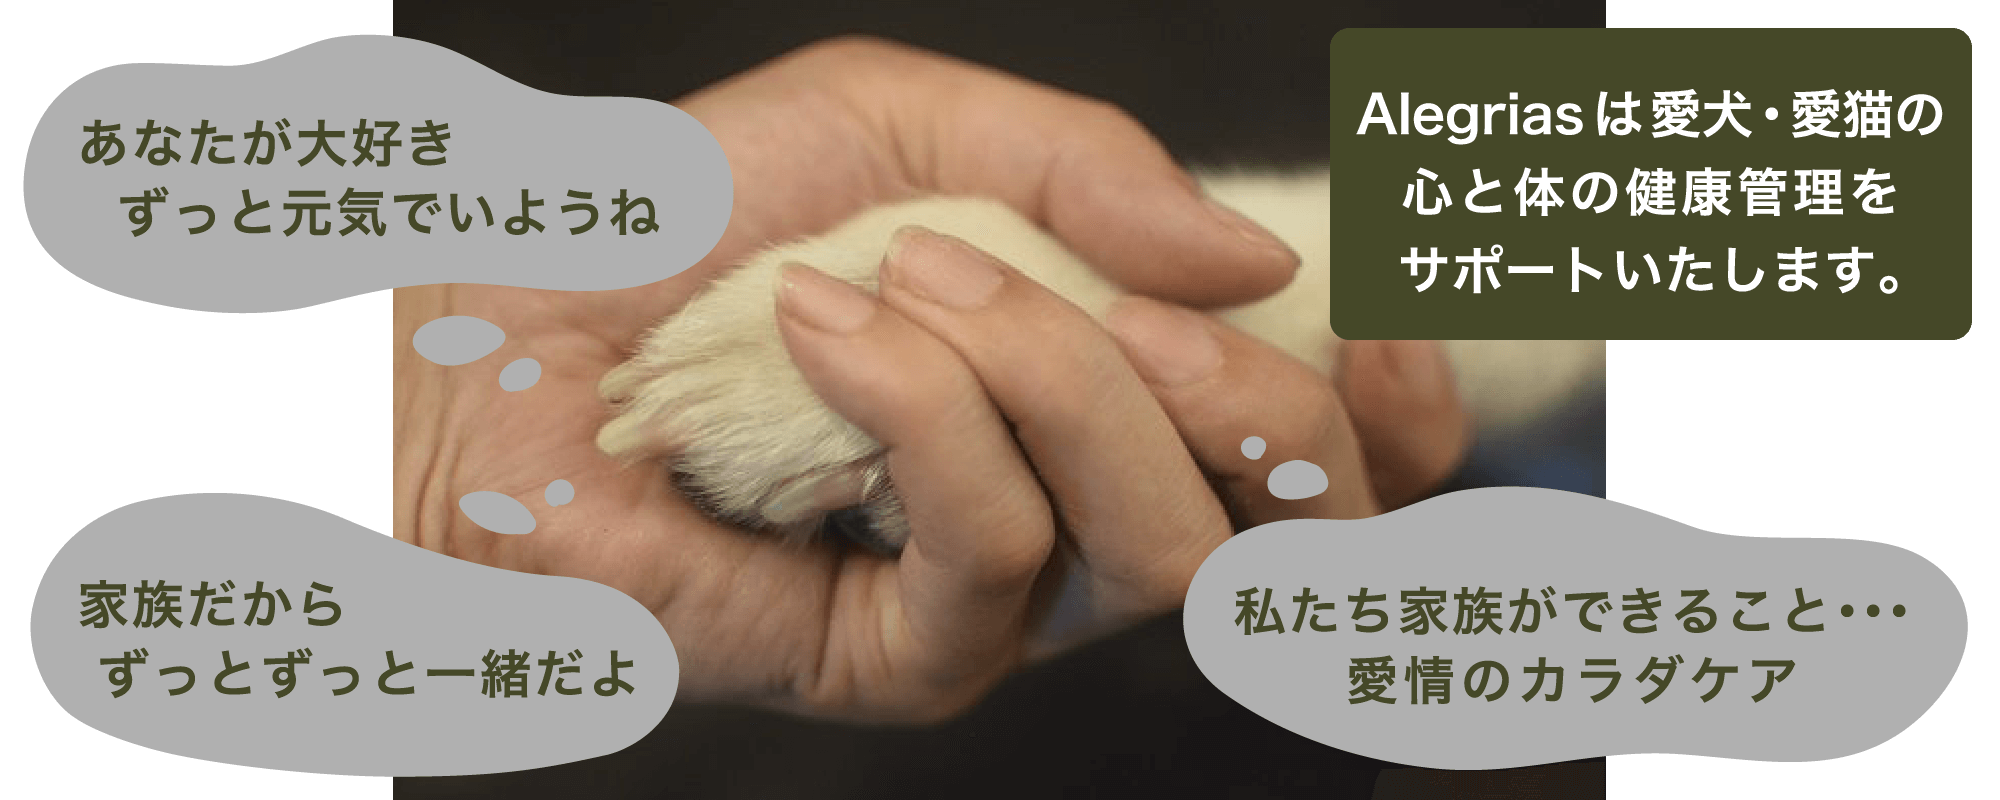 Alegriasは愛犬・愛猫の心と体の健康管理をサポートいたします。